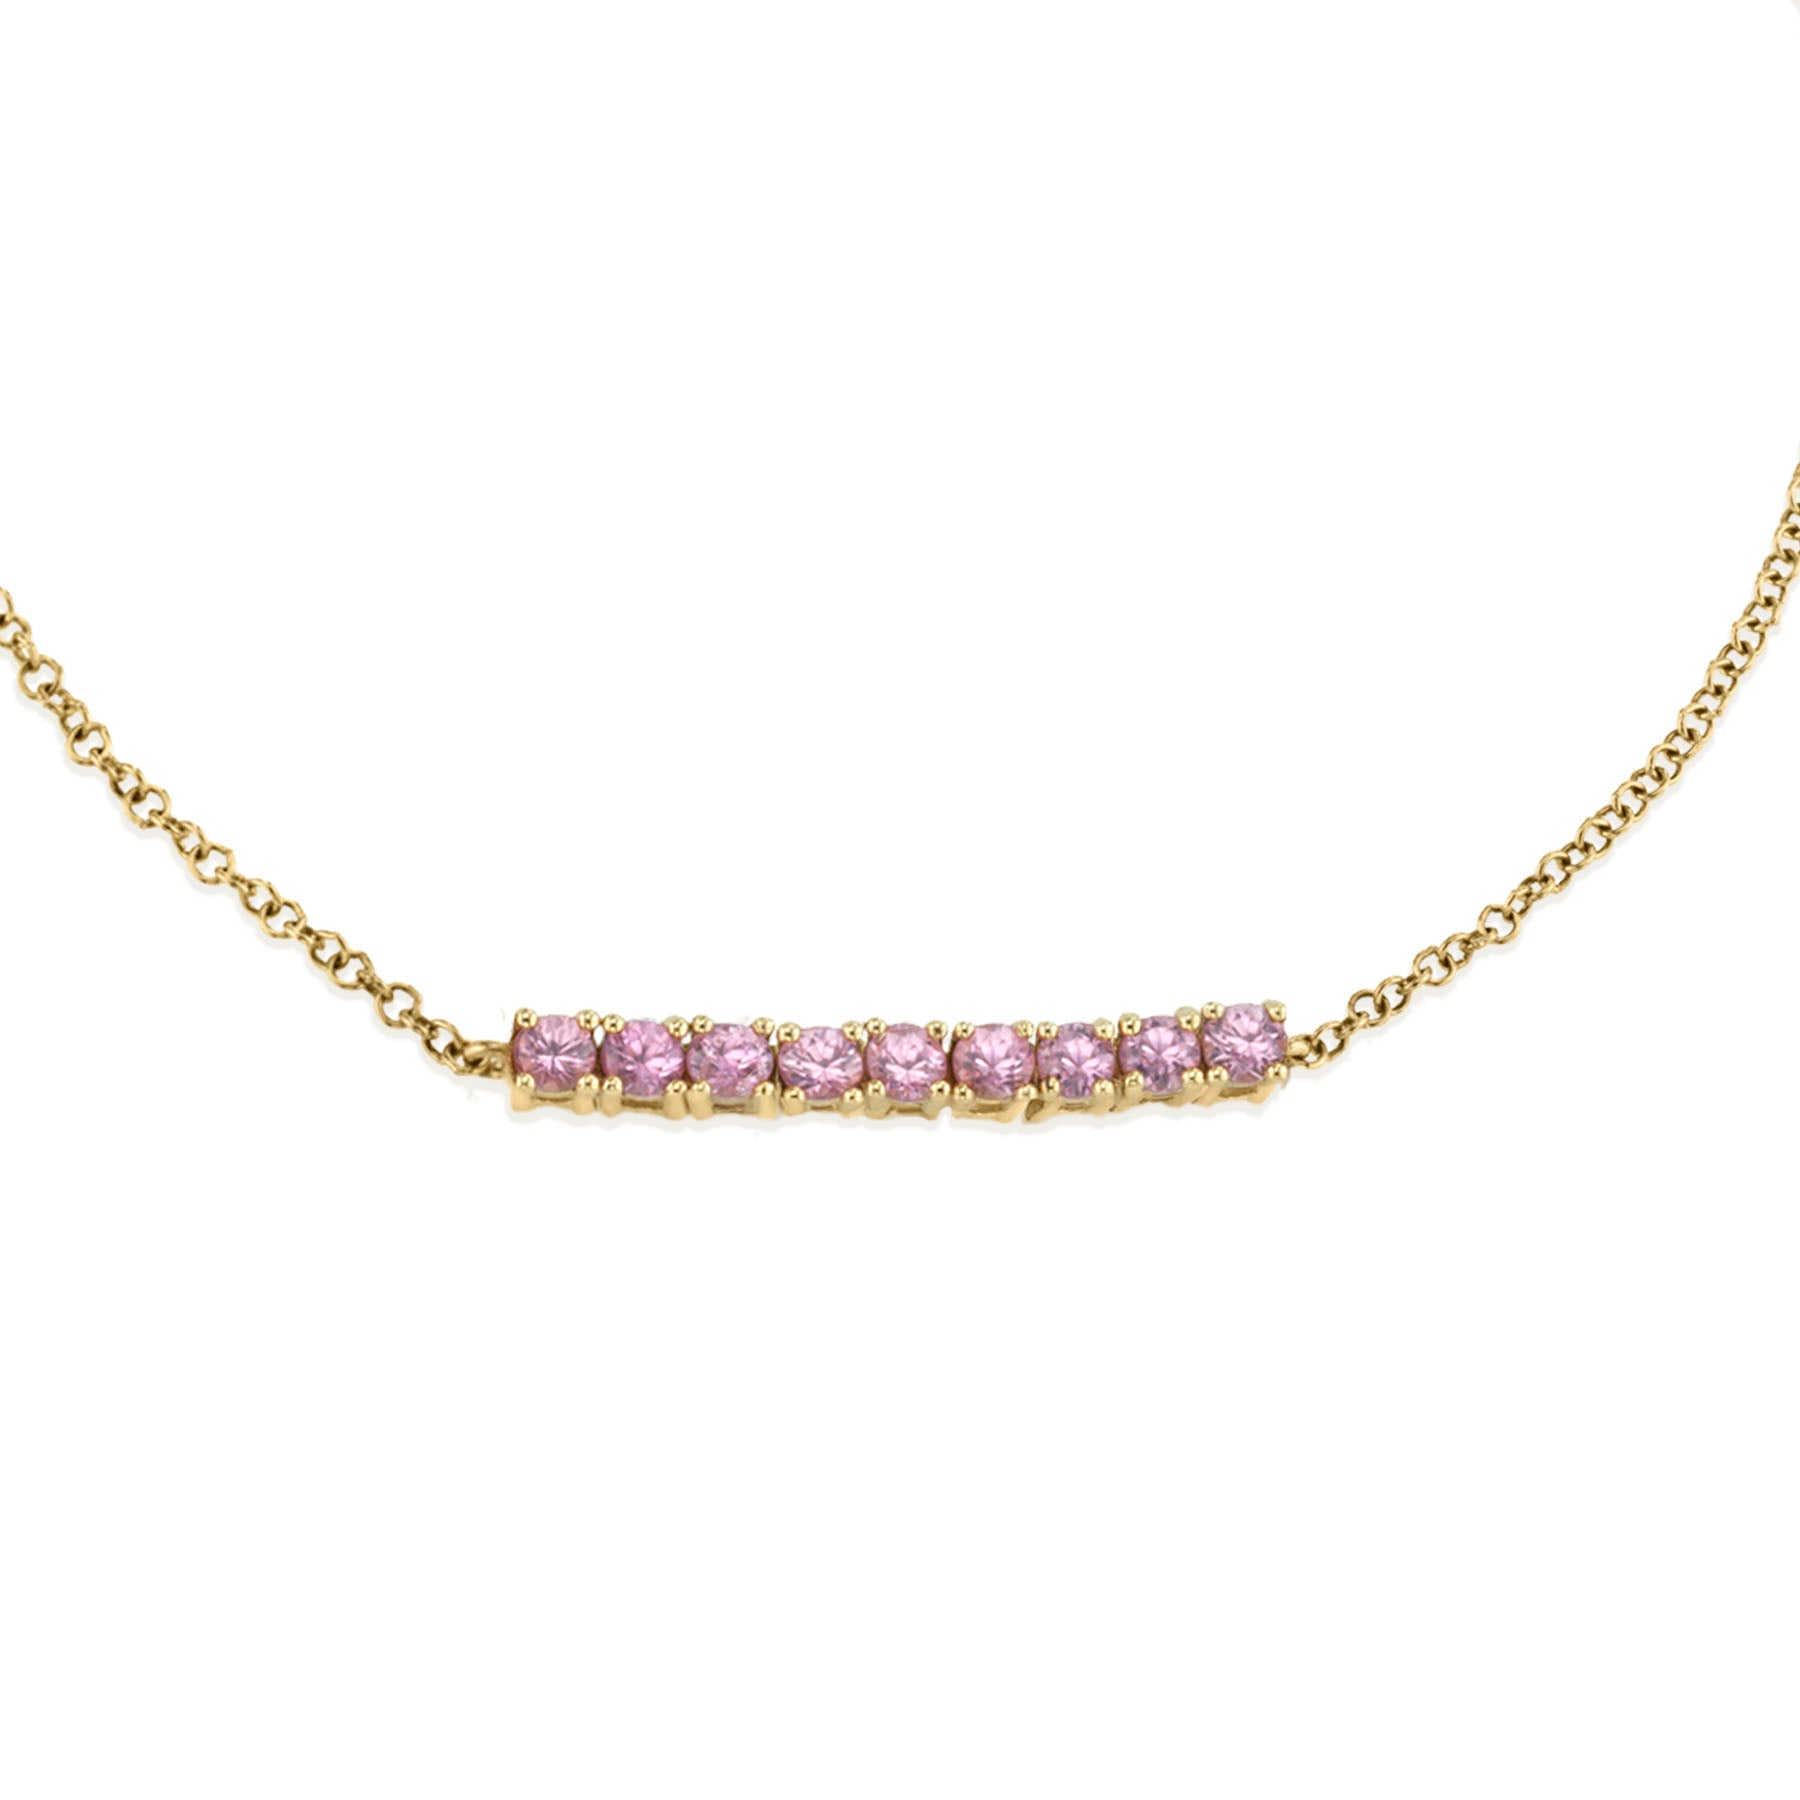 MINI PINK TOURMALINE TENNIS BRACELET